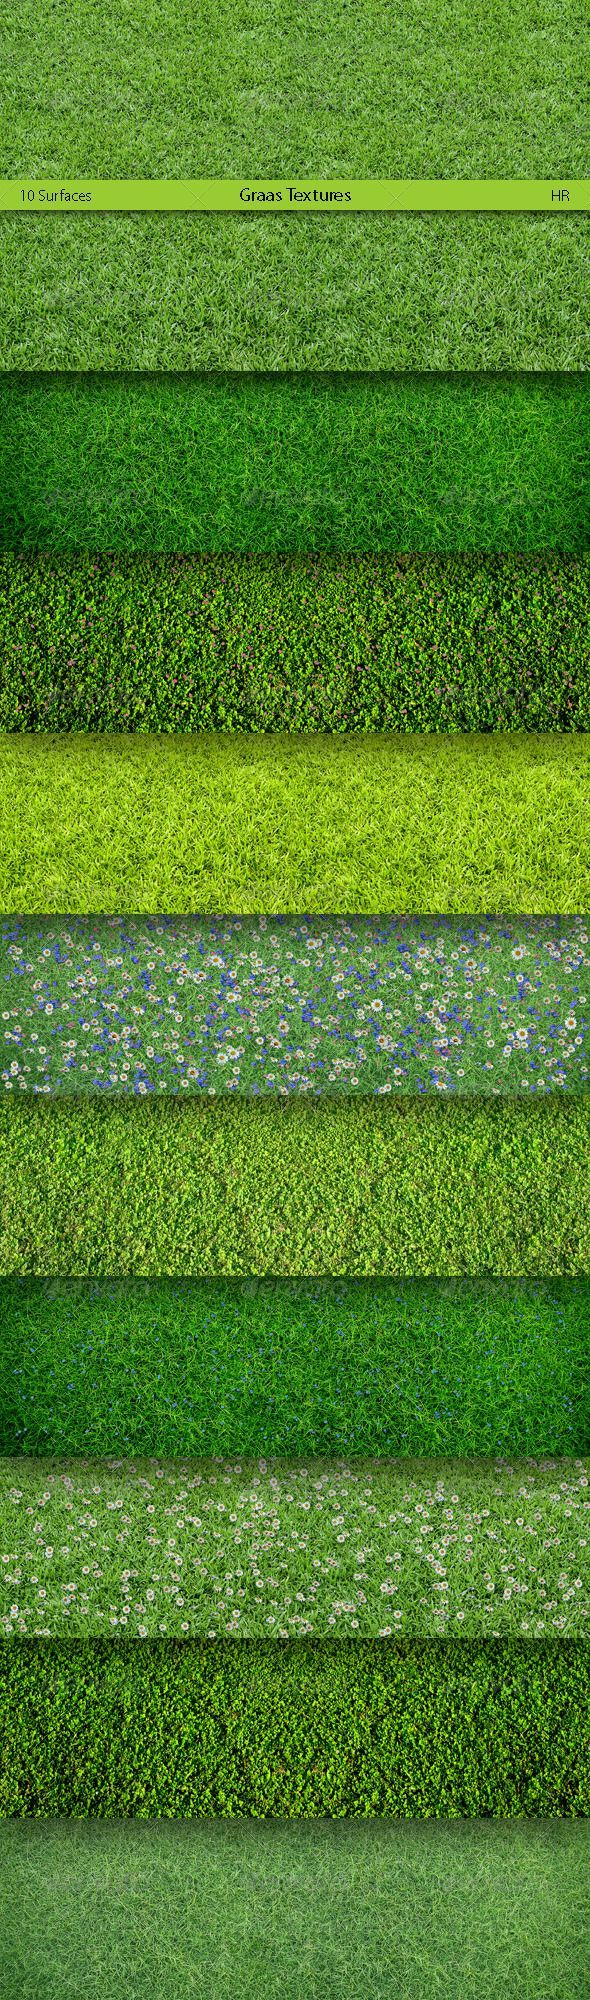 Grass Surfaces Texture Backgrounds: